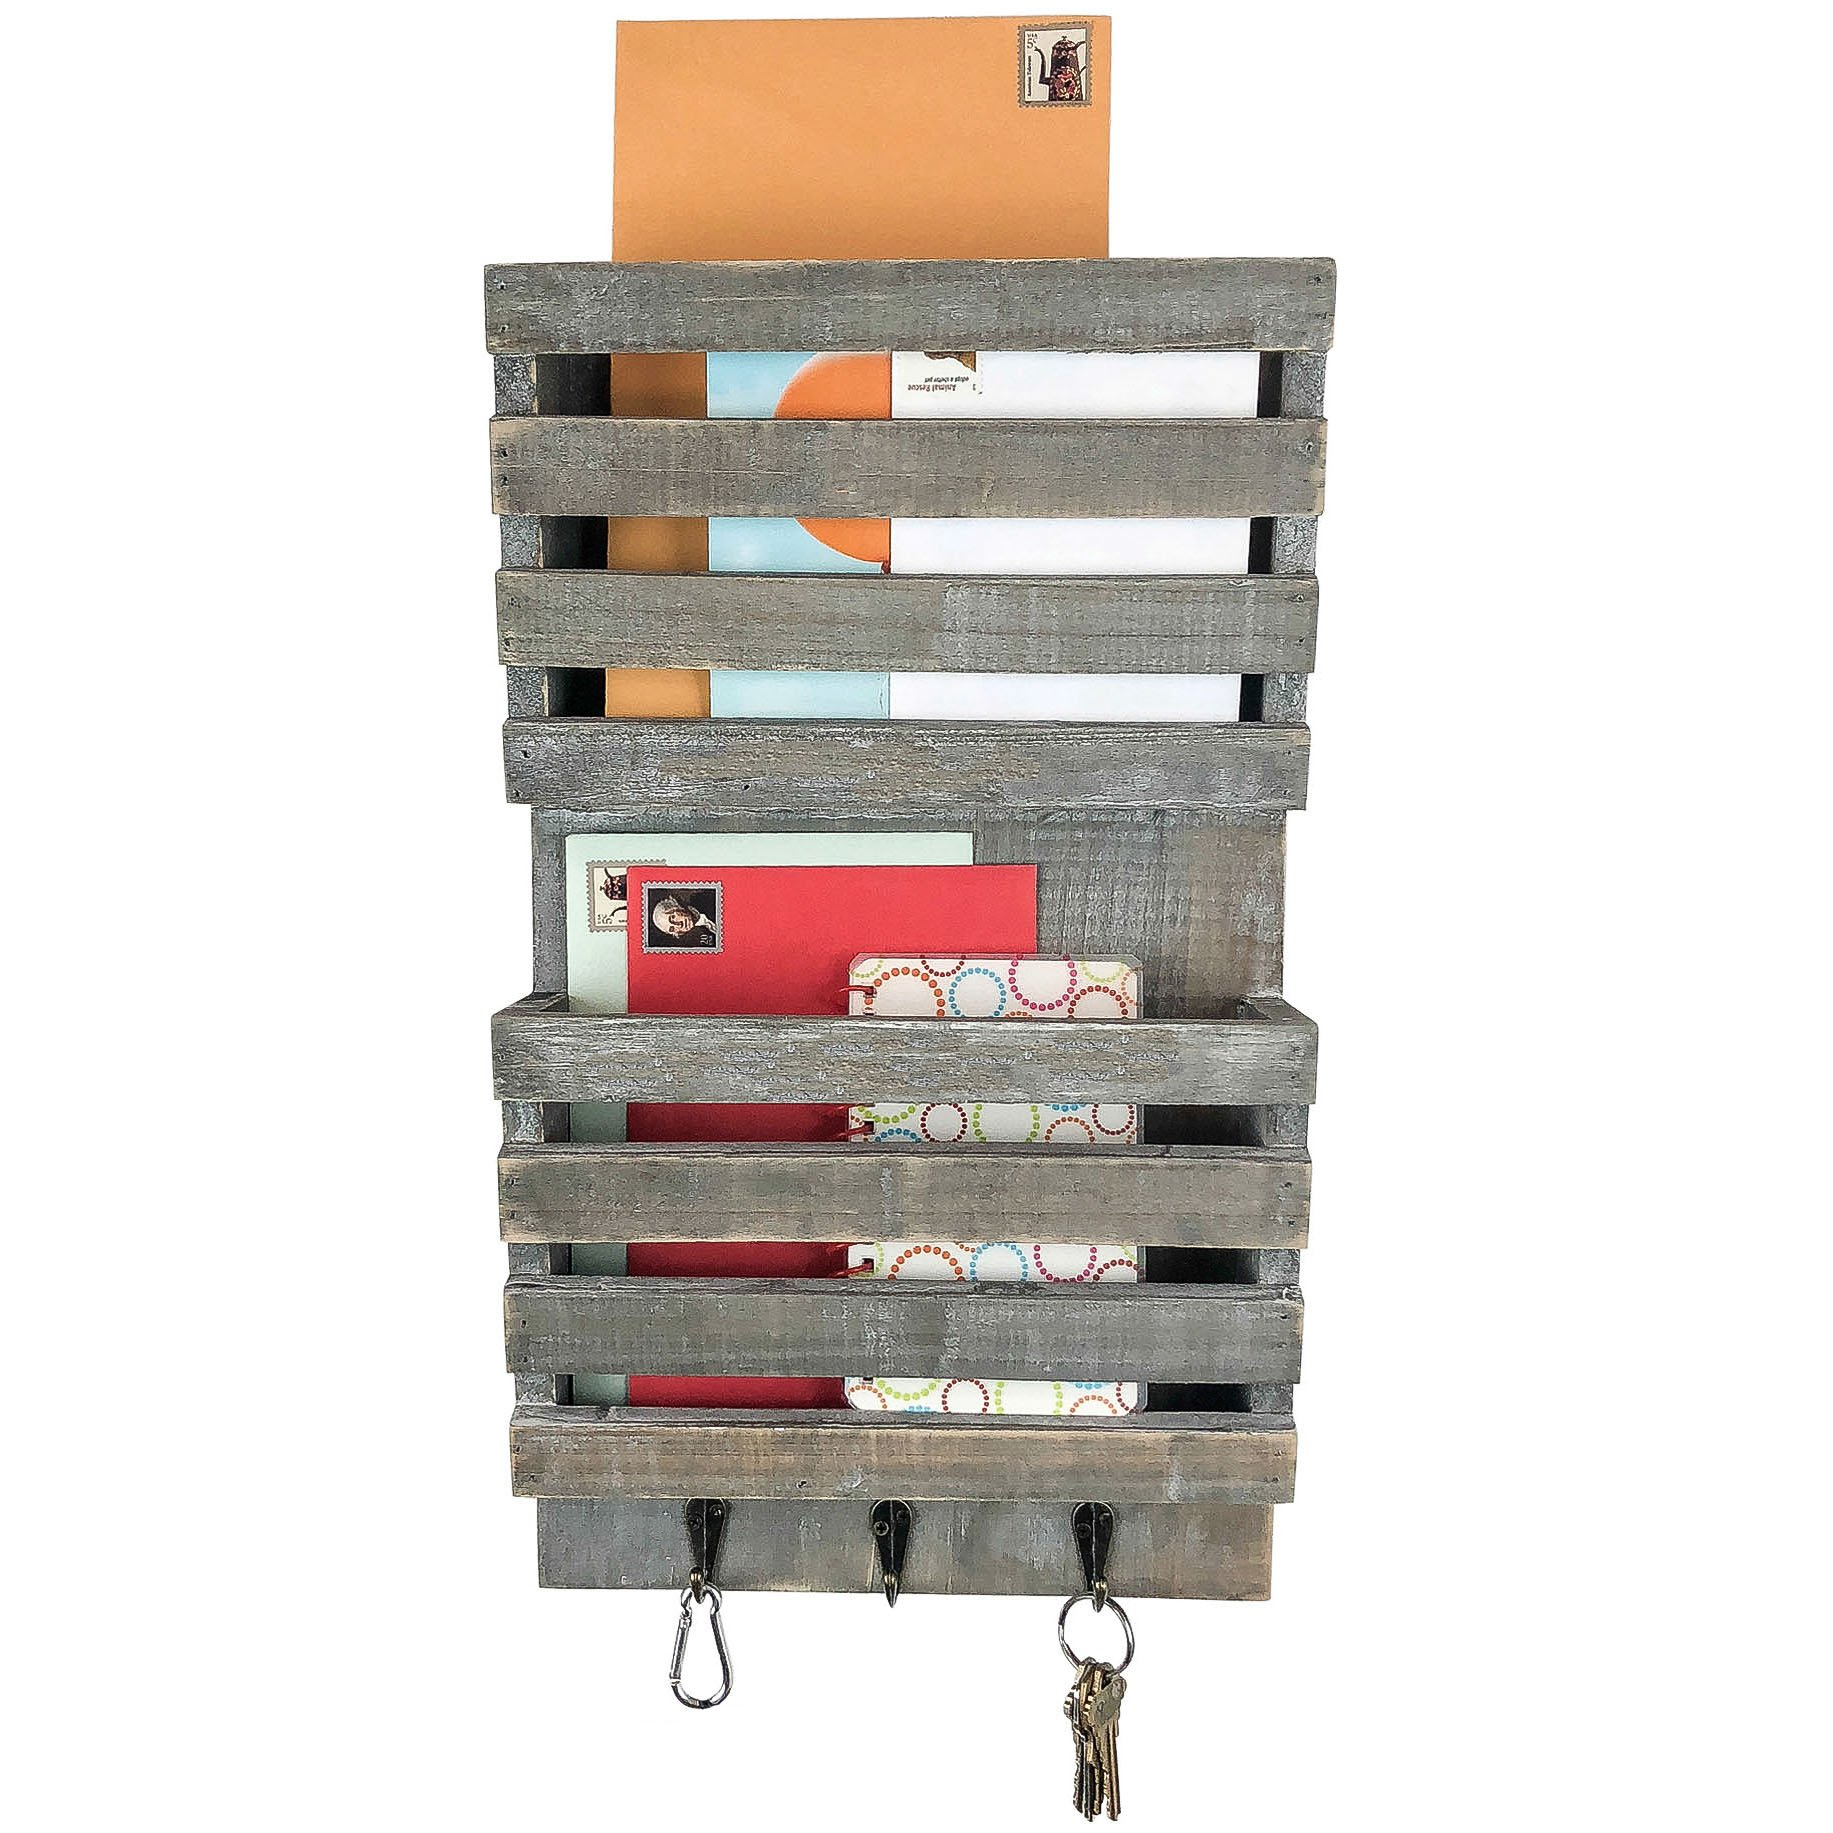 Rusoji Distressed Barnwood Style Wall Mounted Hanging Display Wood Mail Sorter Shelves with Key Hooks, Gray